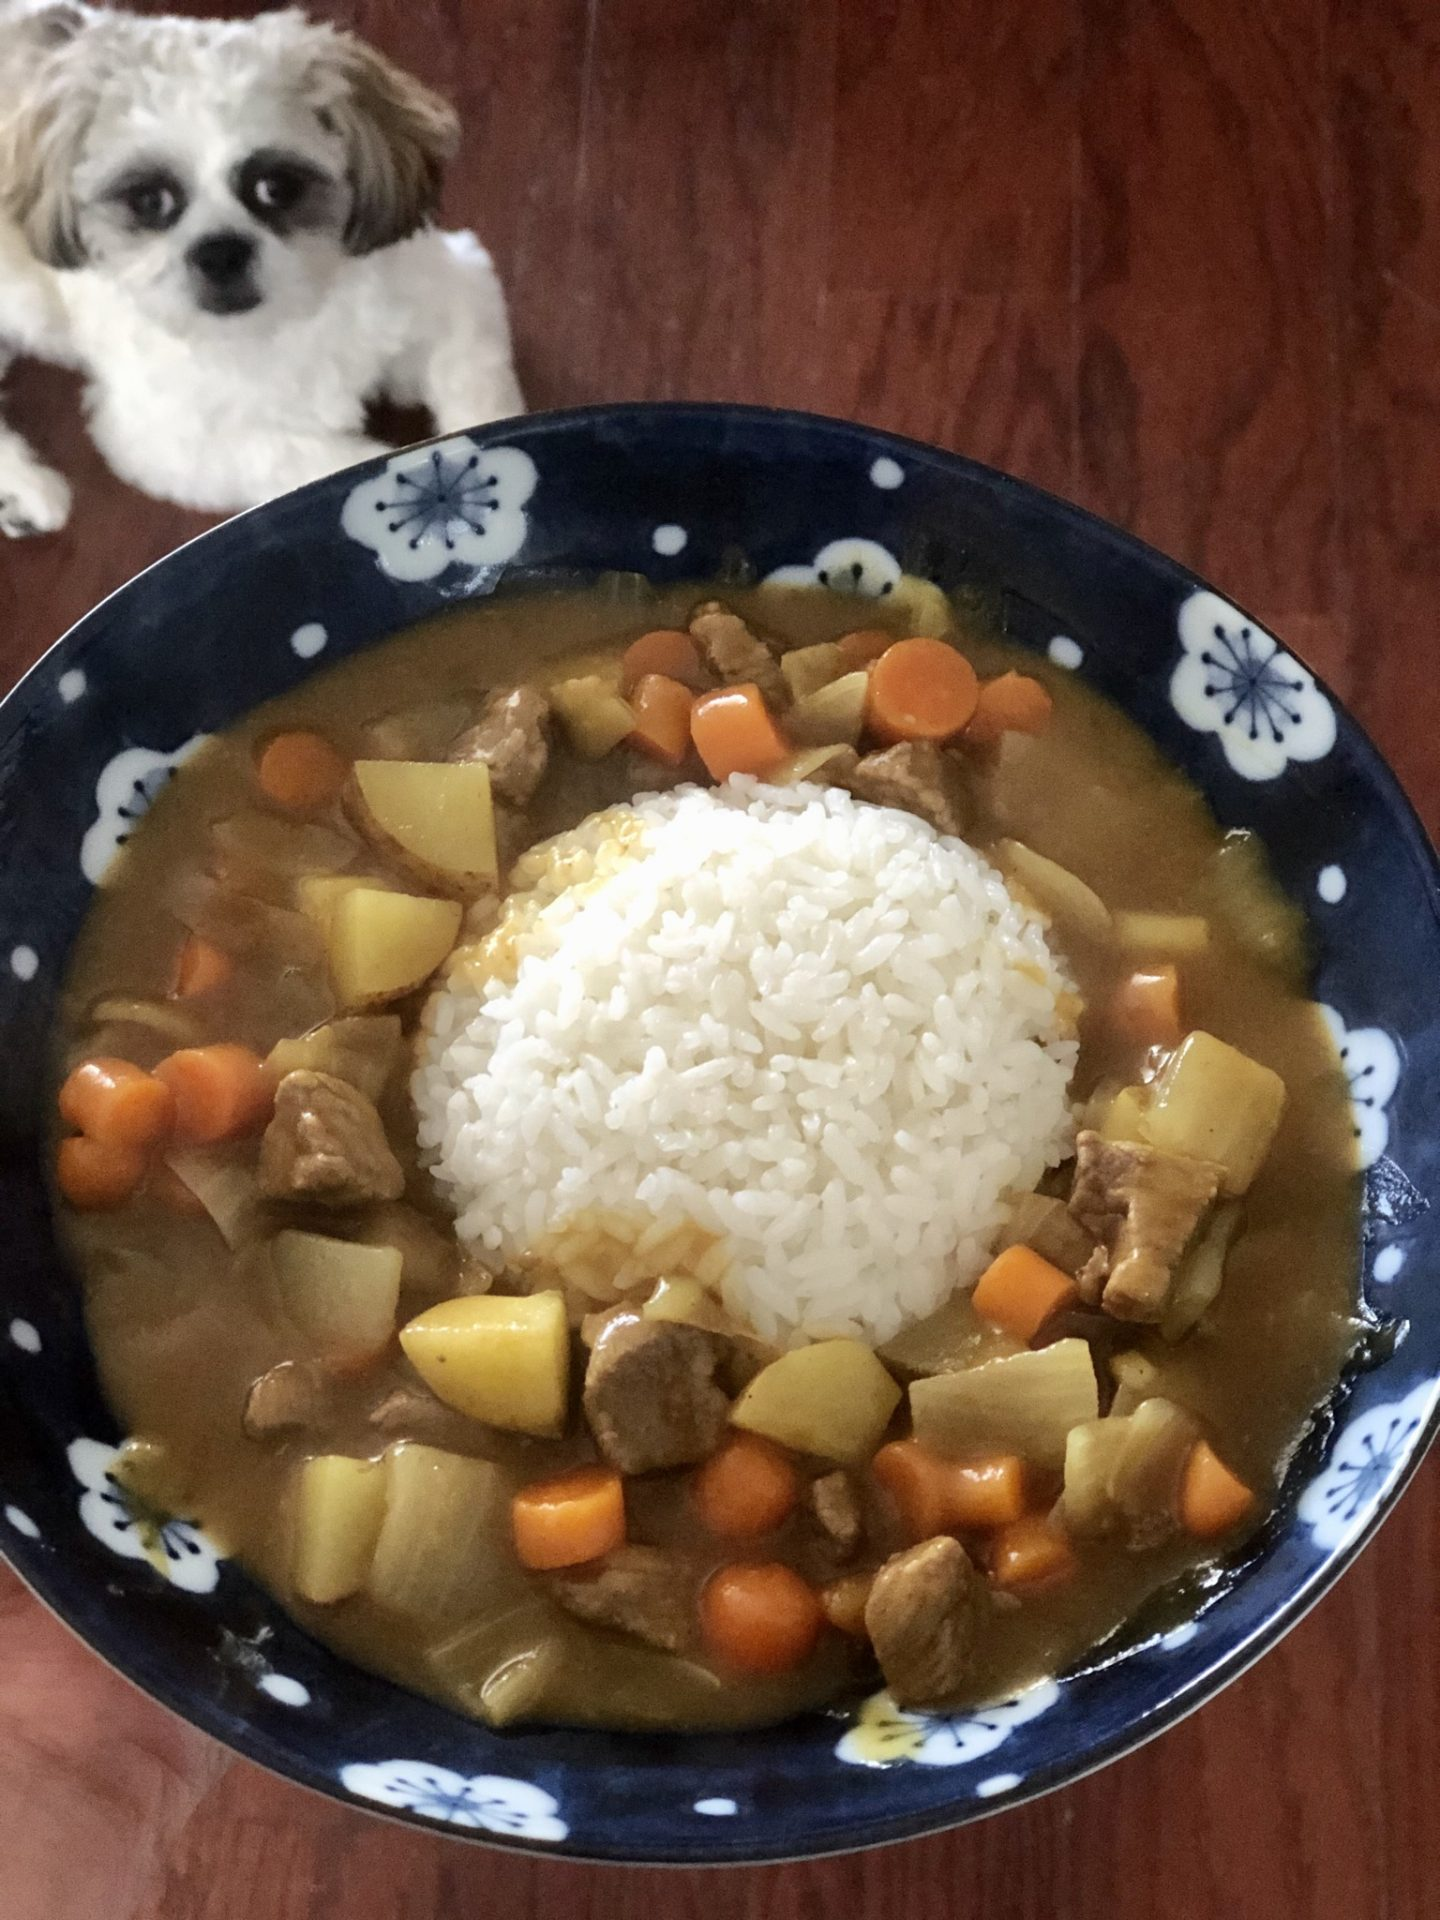 Japanese Curry with beef made with S&B Golden Curry (mild)